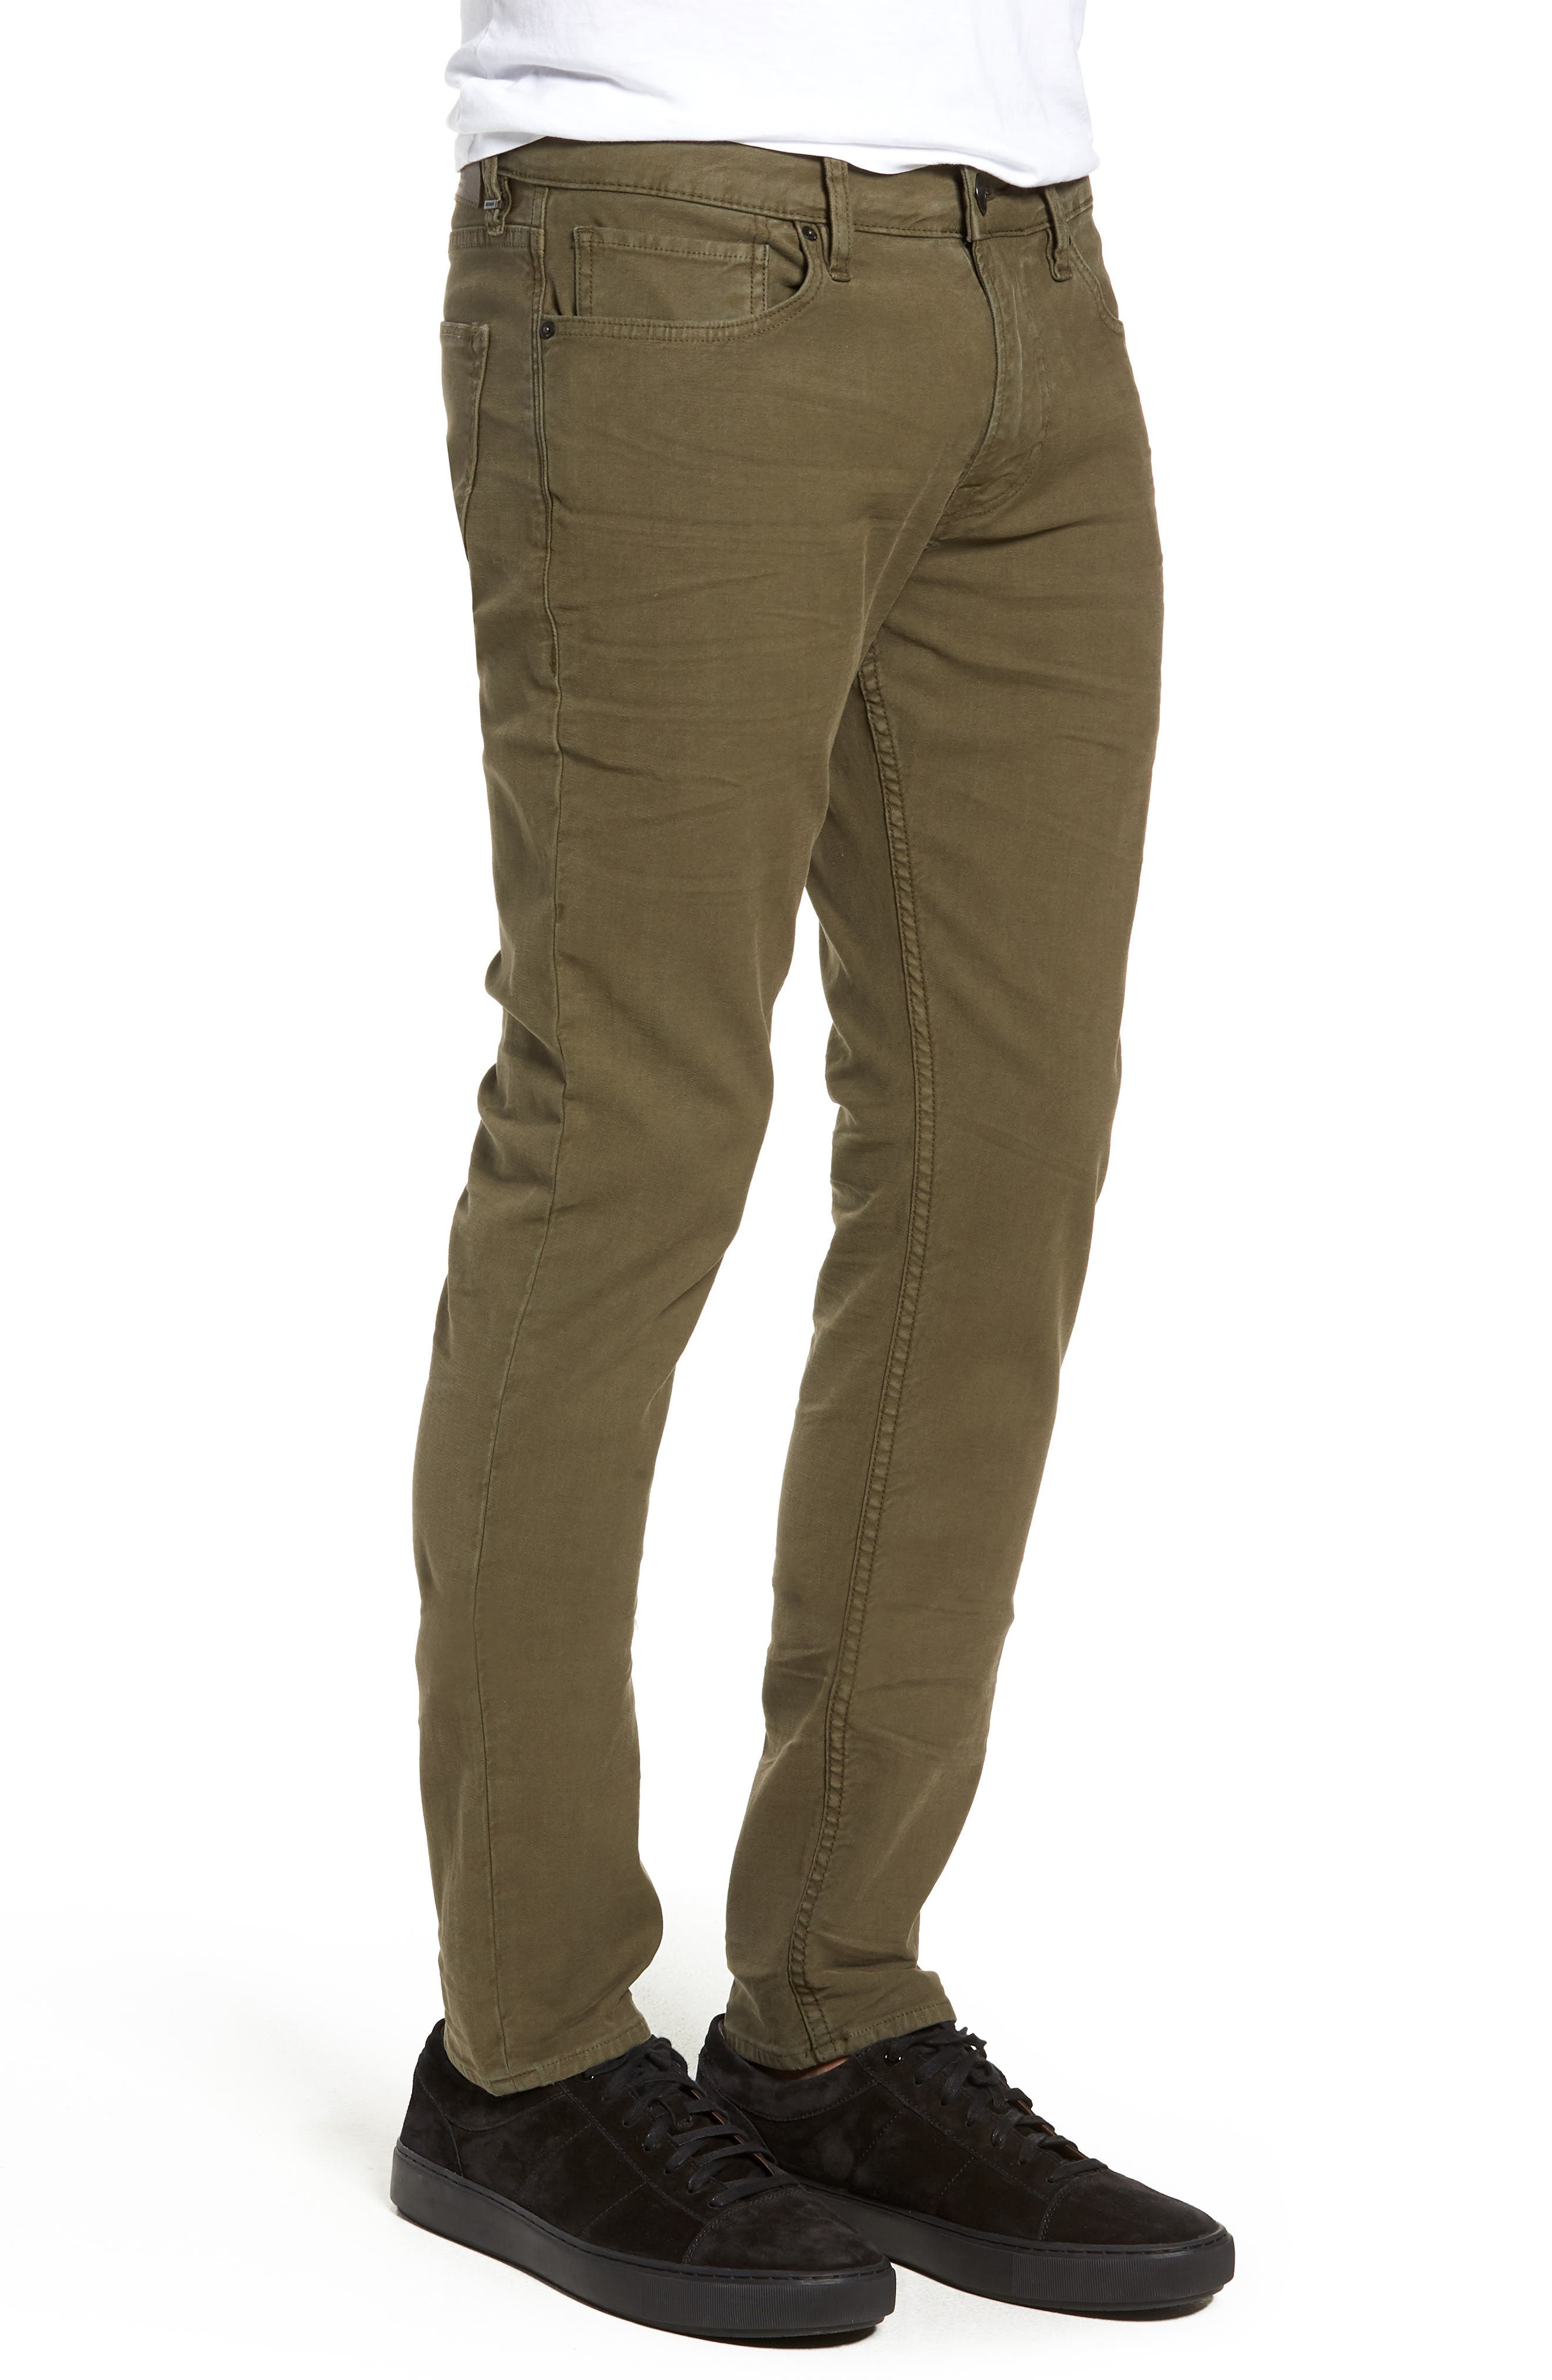 Axl Skinny Fit Jeans,                             Alternate thumbnail 3, color,                             FATIGUE GREEN